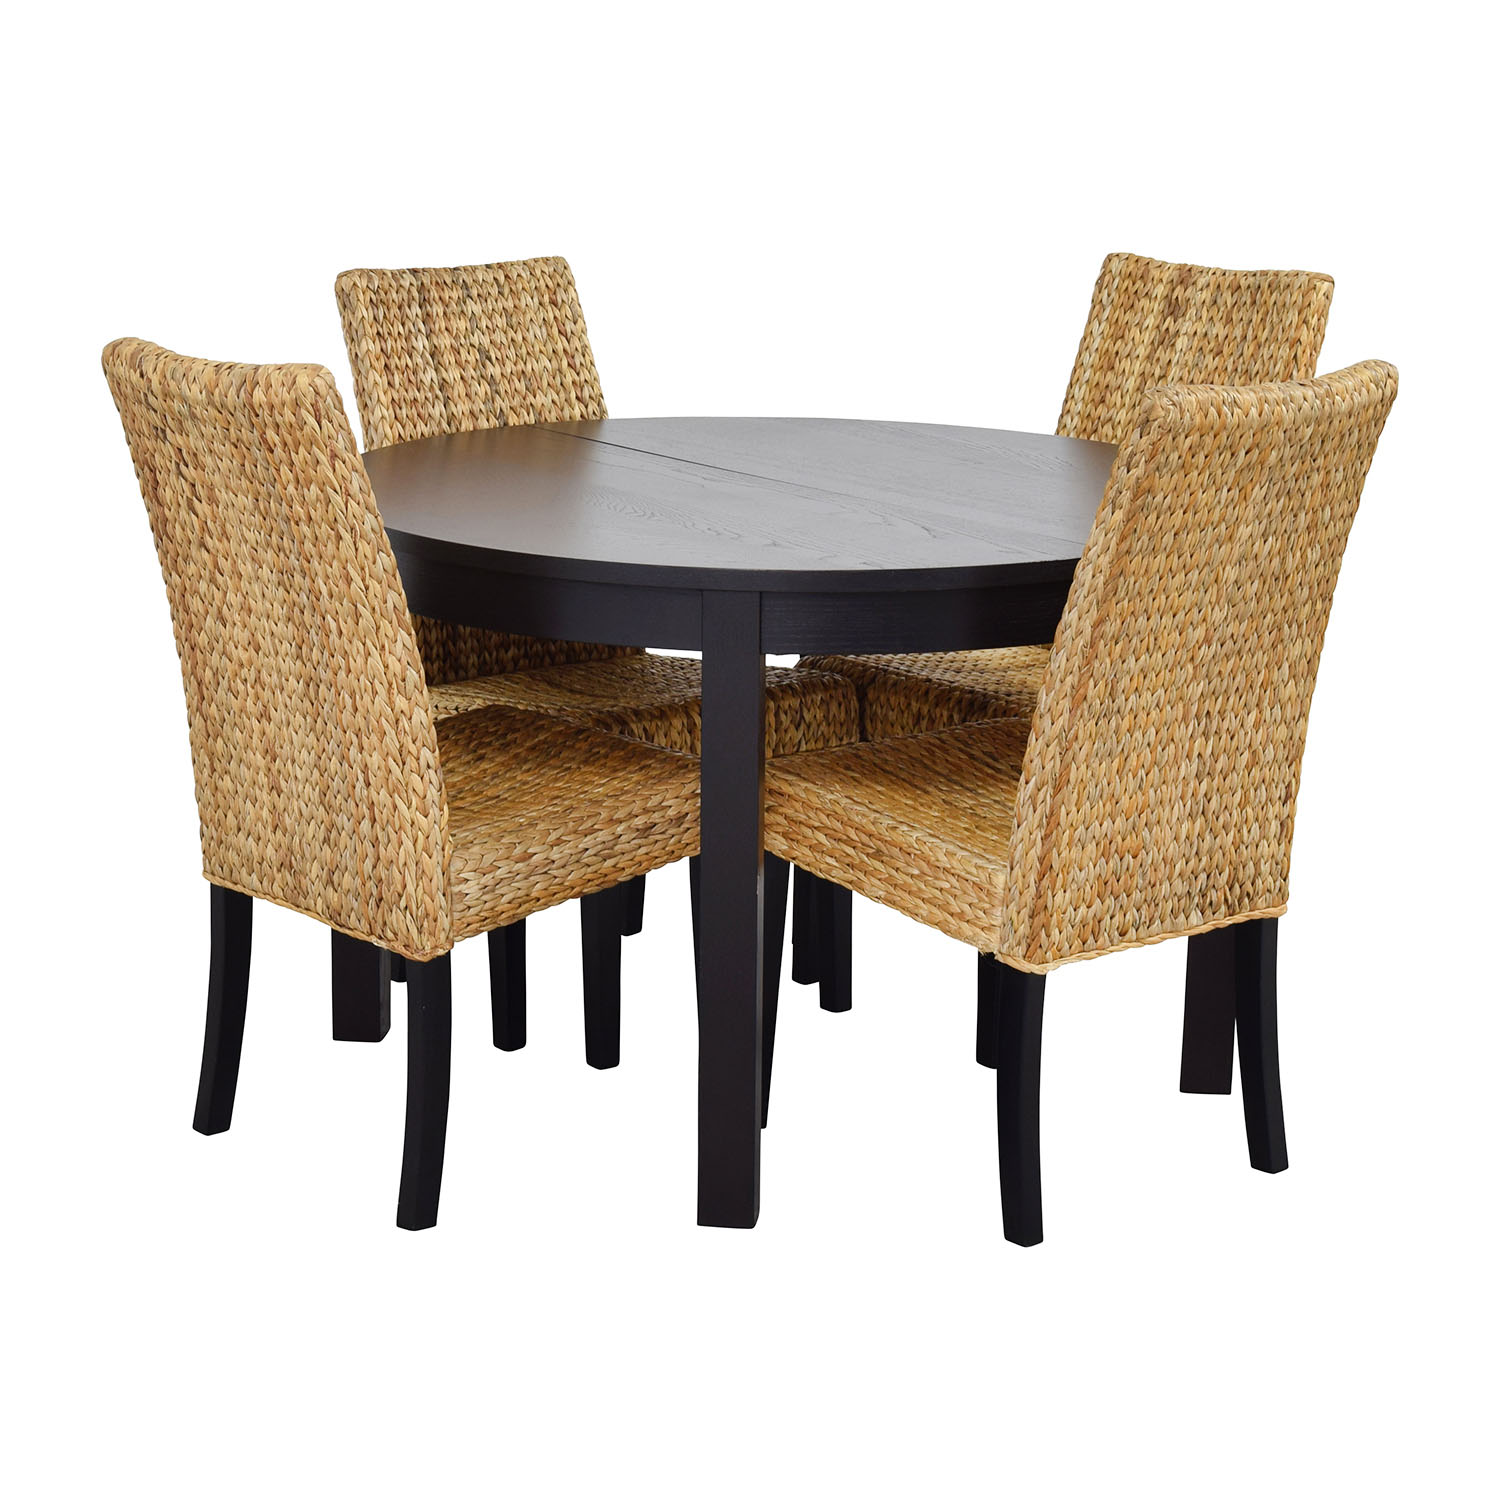 66 off macy 39 s ikea round black dining table set with four chairs tables. Black Bedroom Furniture Sets. Home Design Ideas